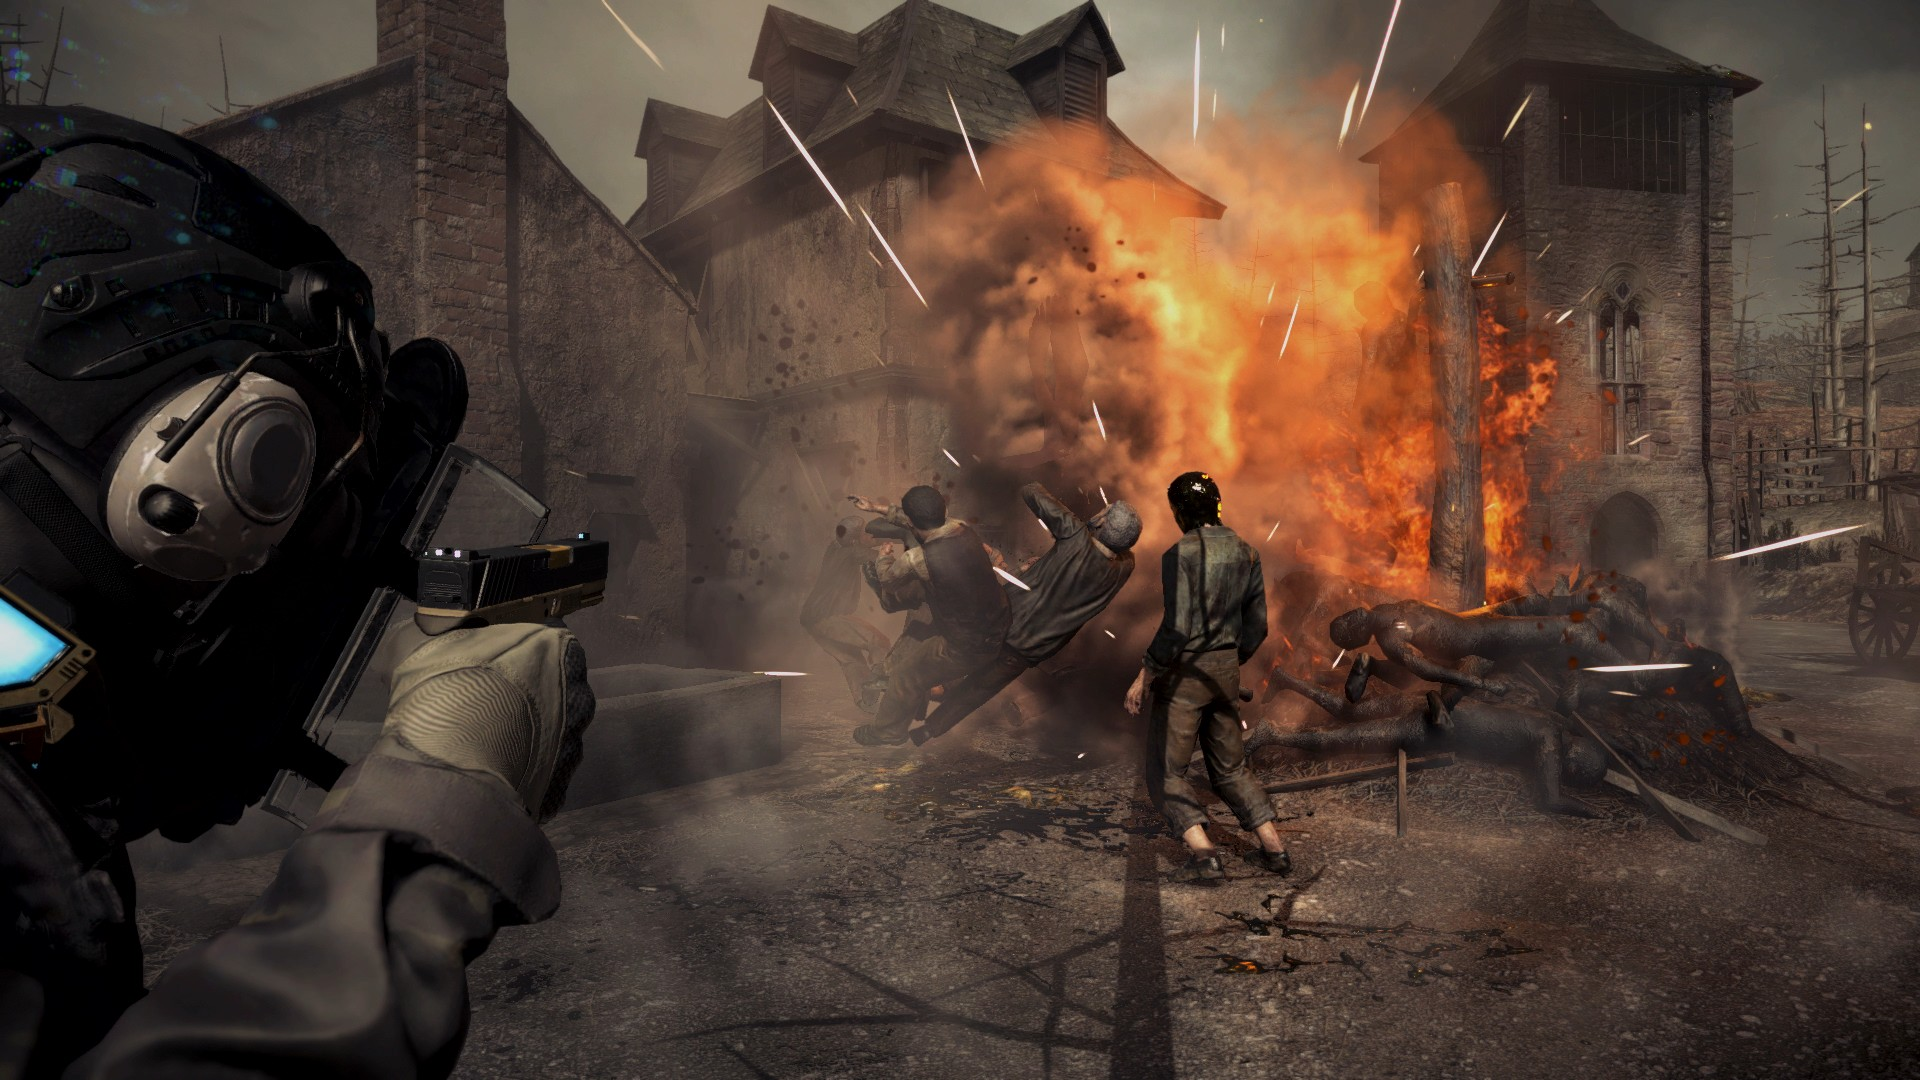 New Umbrella Corps images show off Resident Evil 4's village